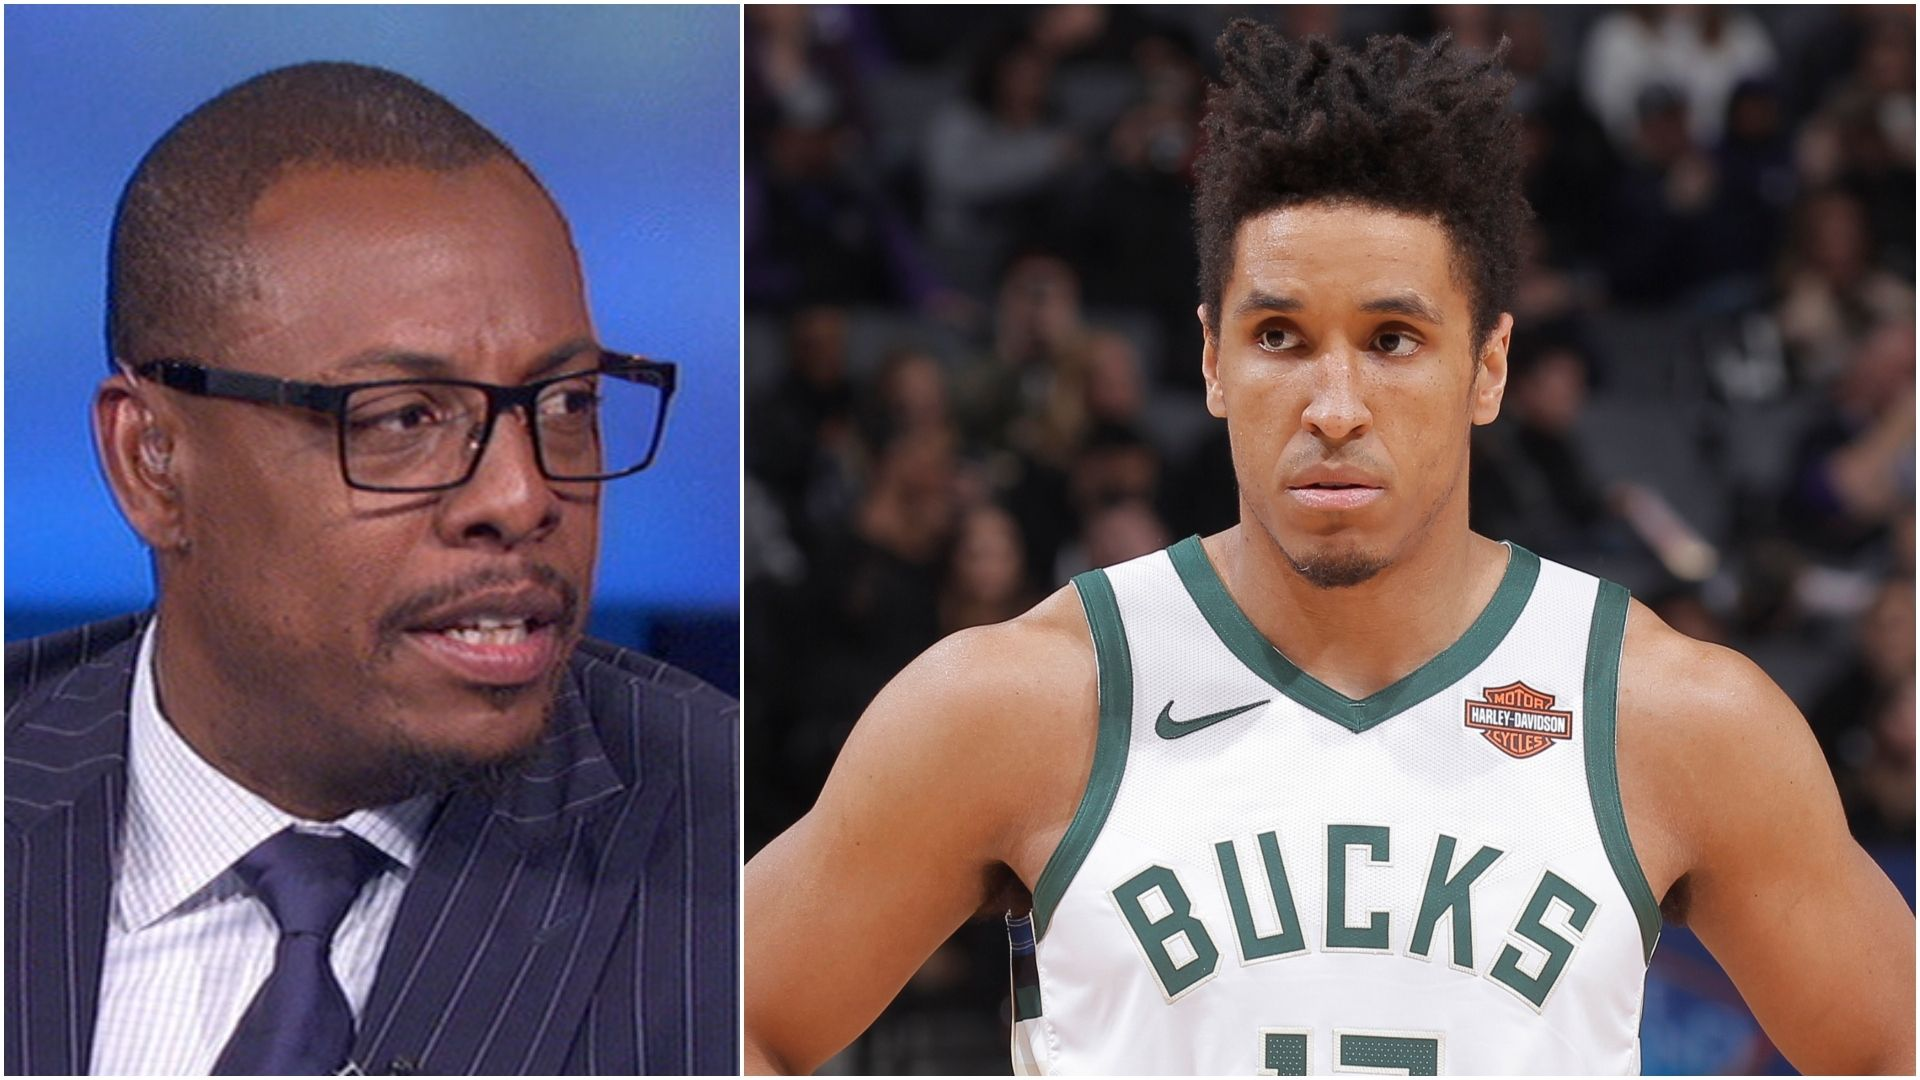 Bucks' Brogdon likely out 6-8 weeks, sources say